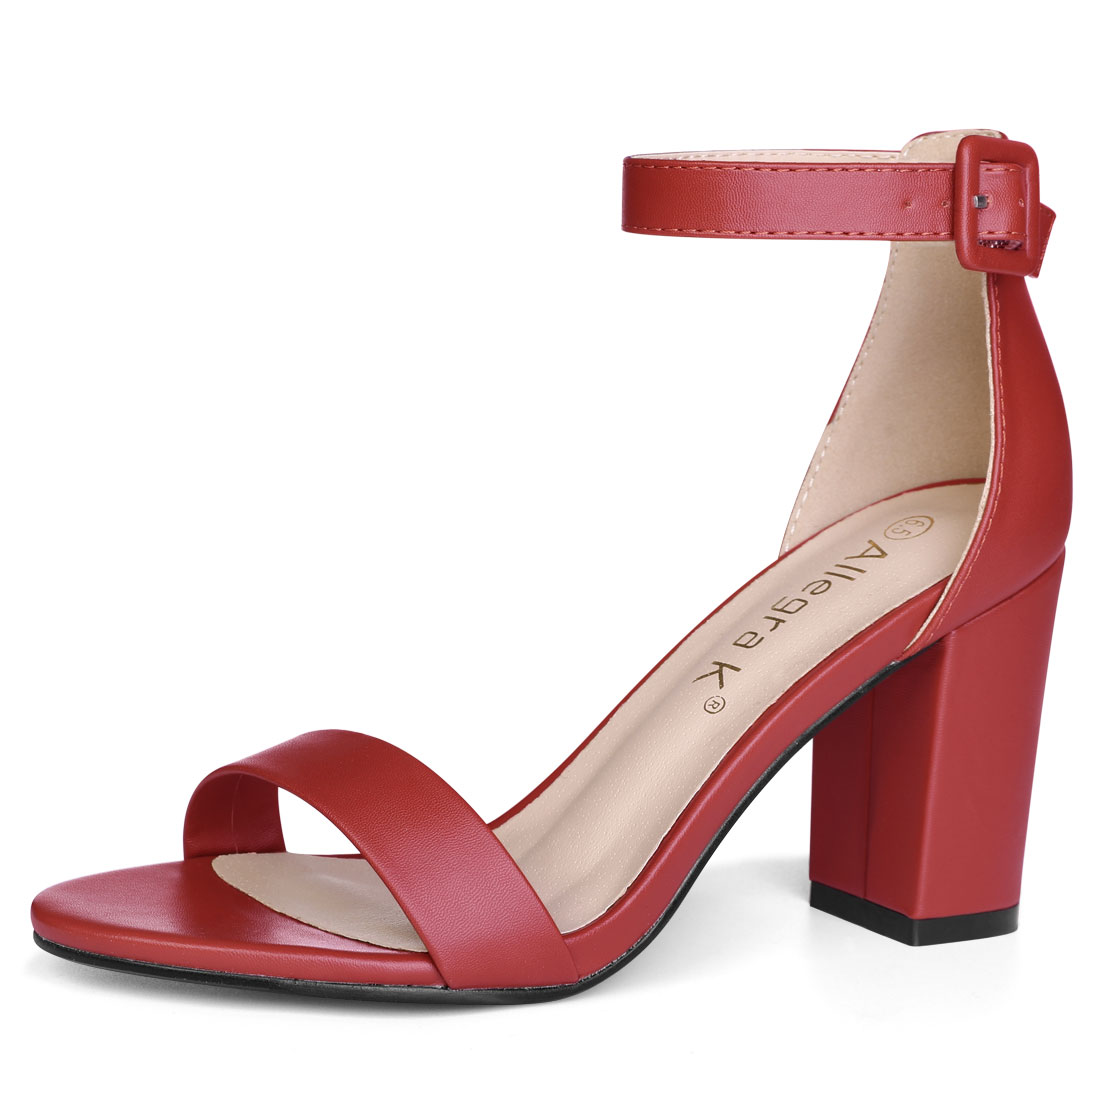 YFL284-66 Women Open Toe Chunky High Heel Ankle Strap Sandals Red/US 9.5 - image 7 de 7